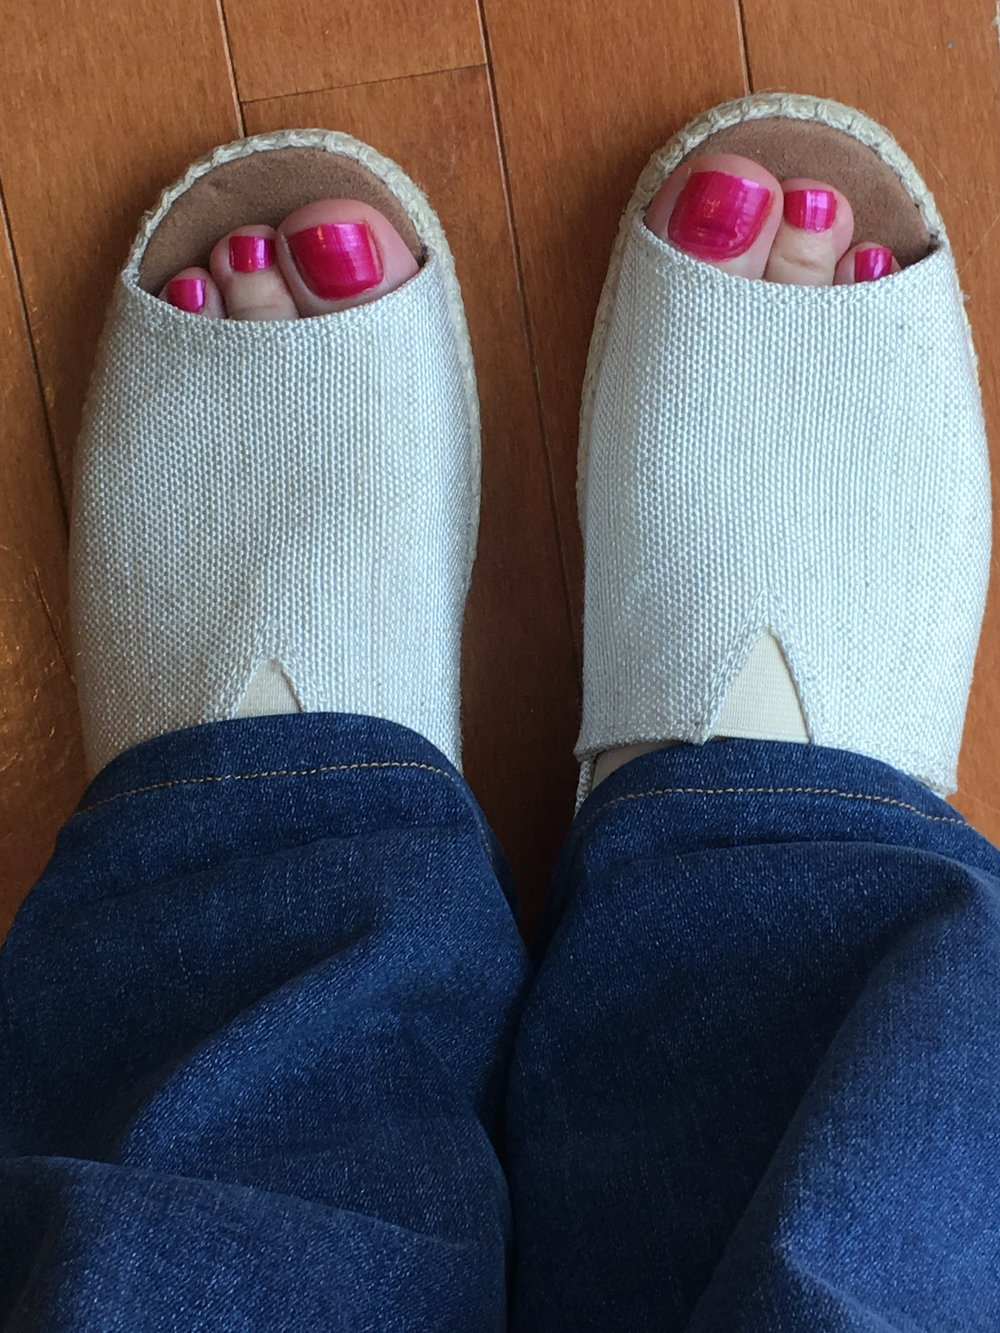 Love the look! Still testing comfort level at the toe end (see blog).